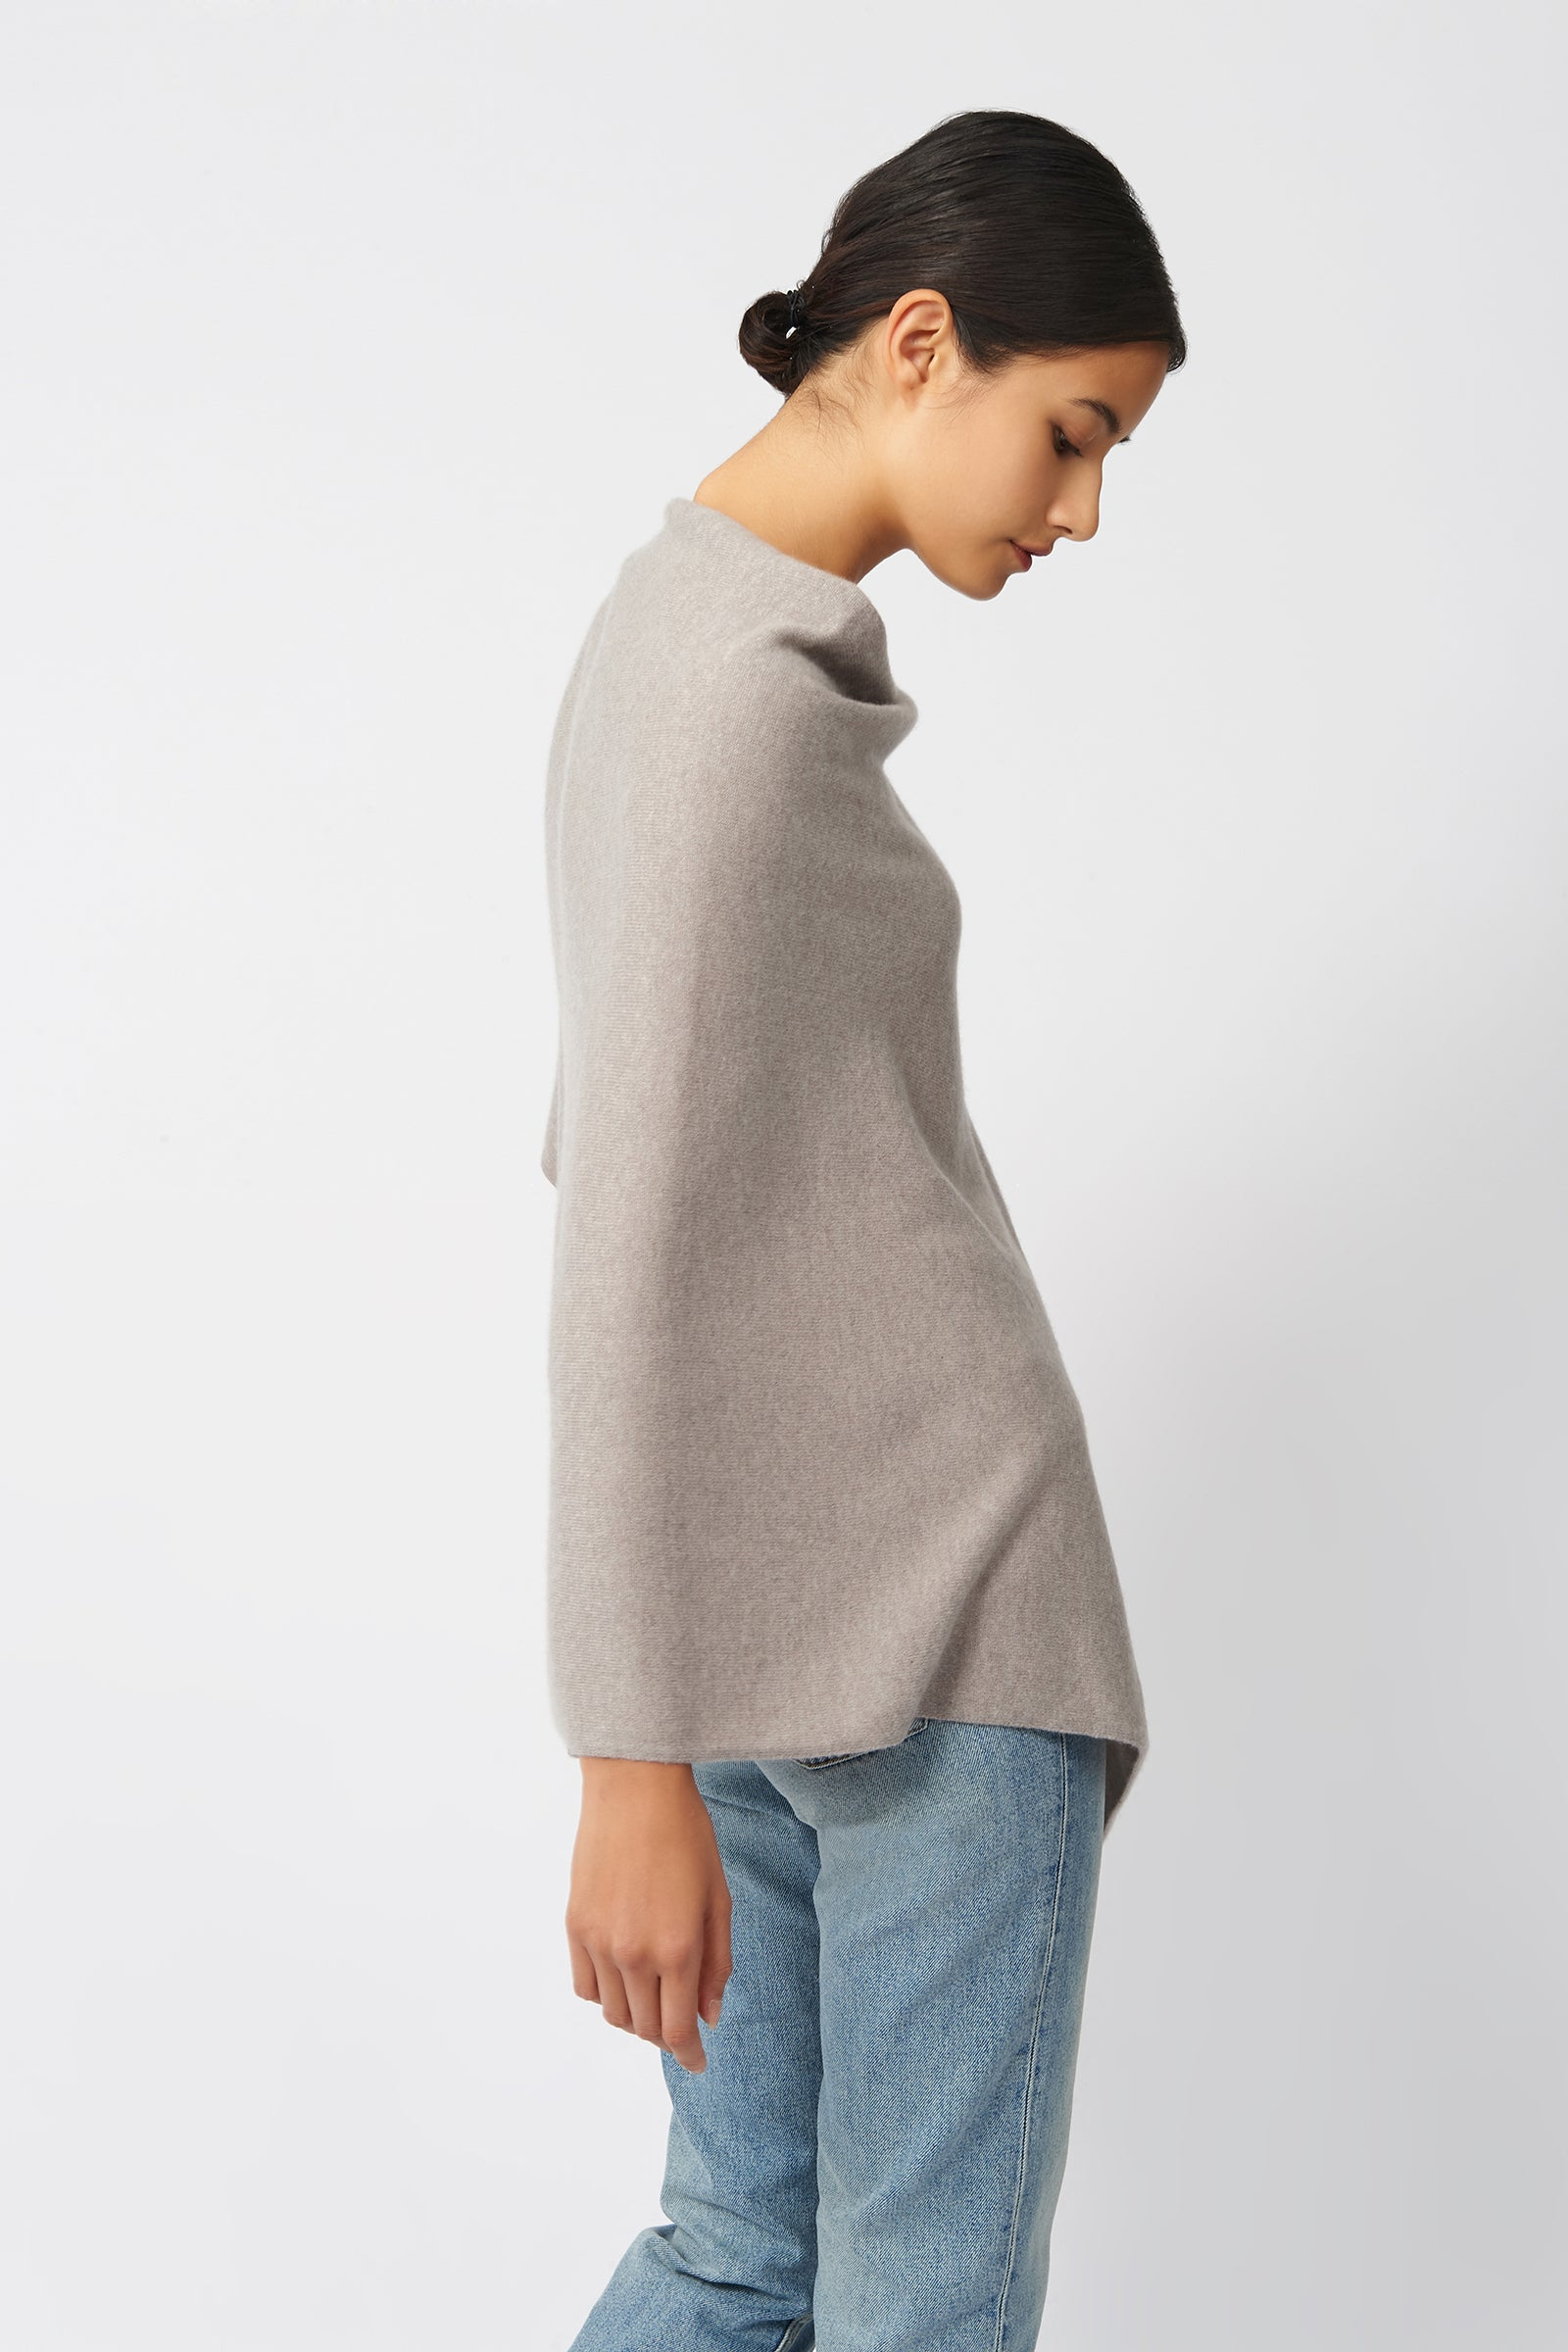 Kal Rieman Cashmere Poncho in Drift on Model Side View